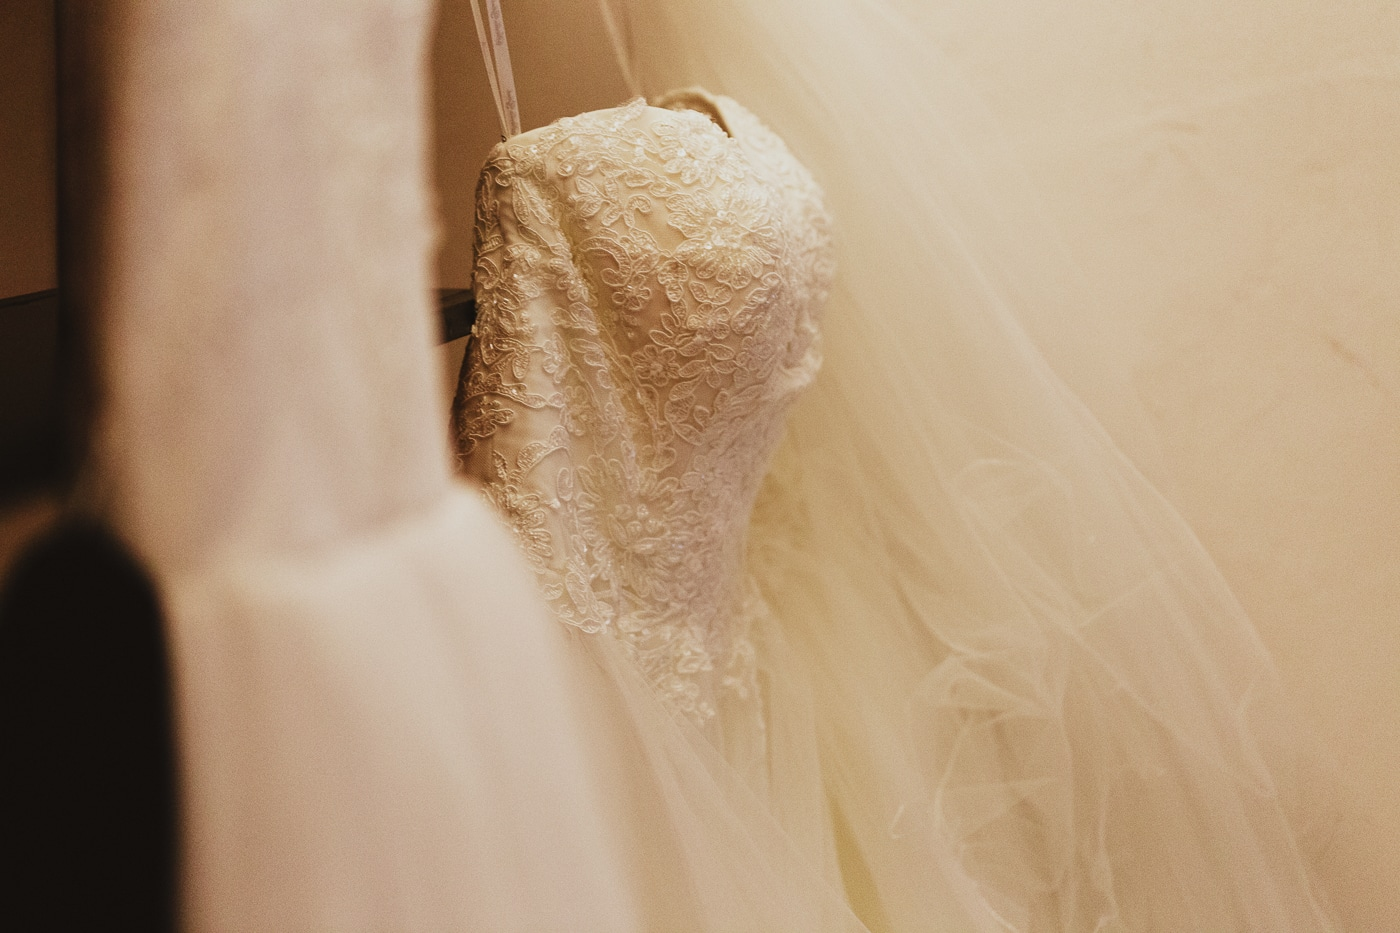 White beaded wedding dress hanging up